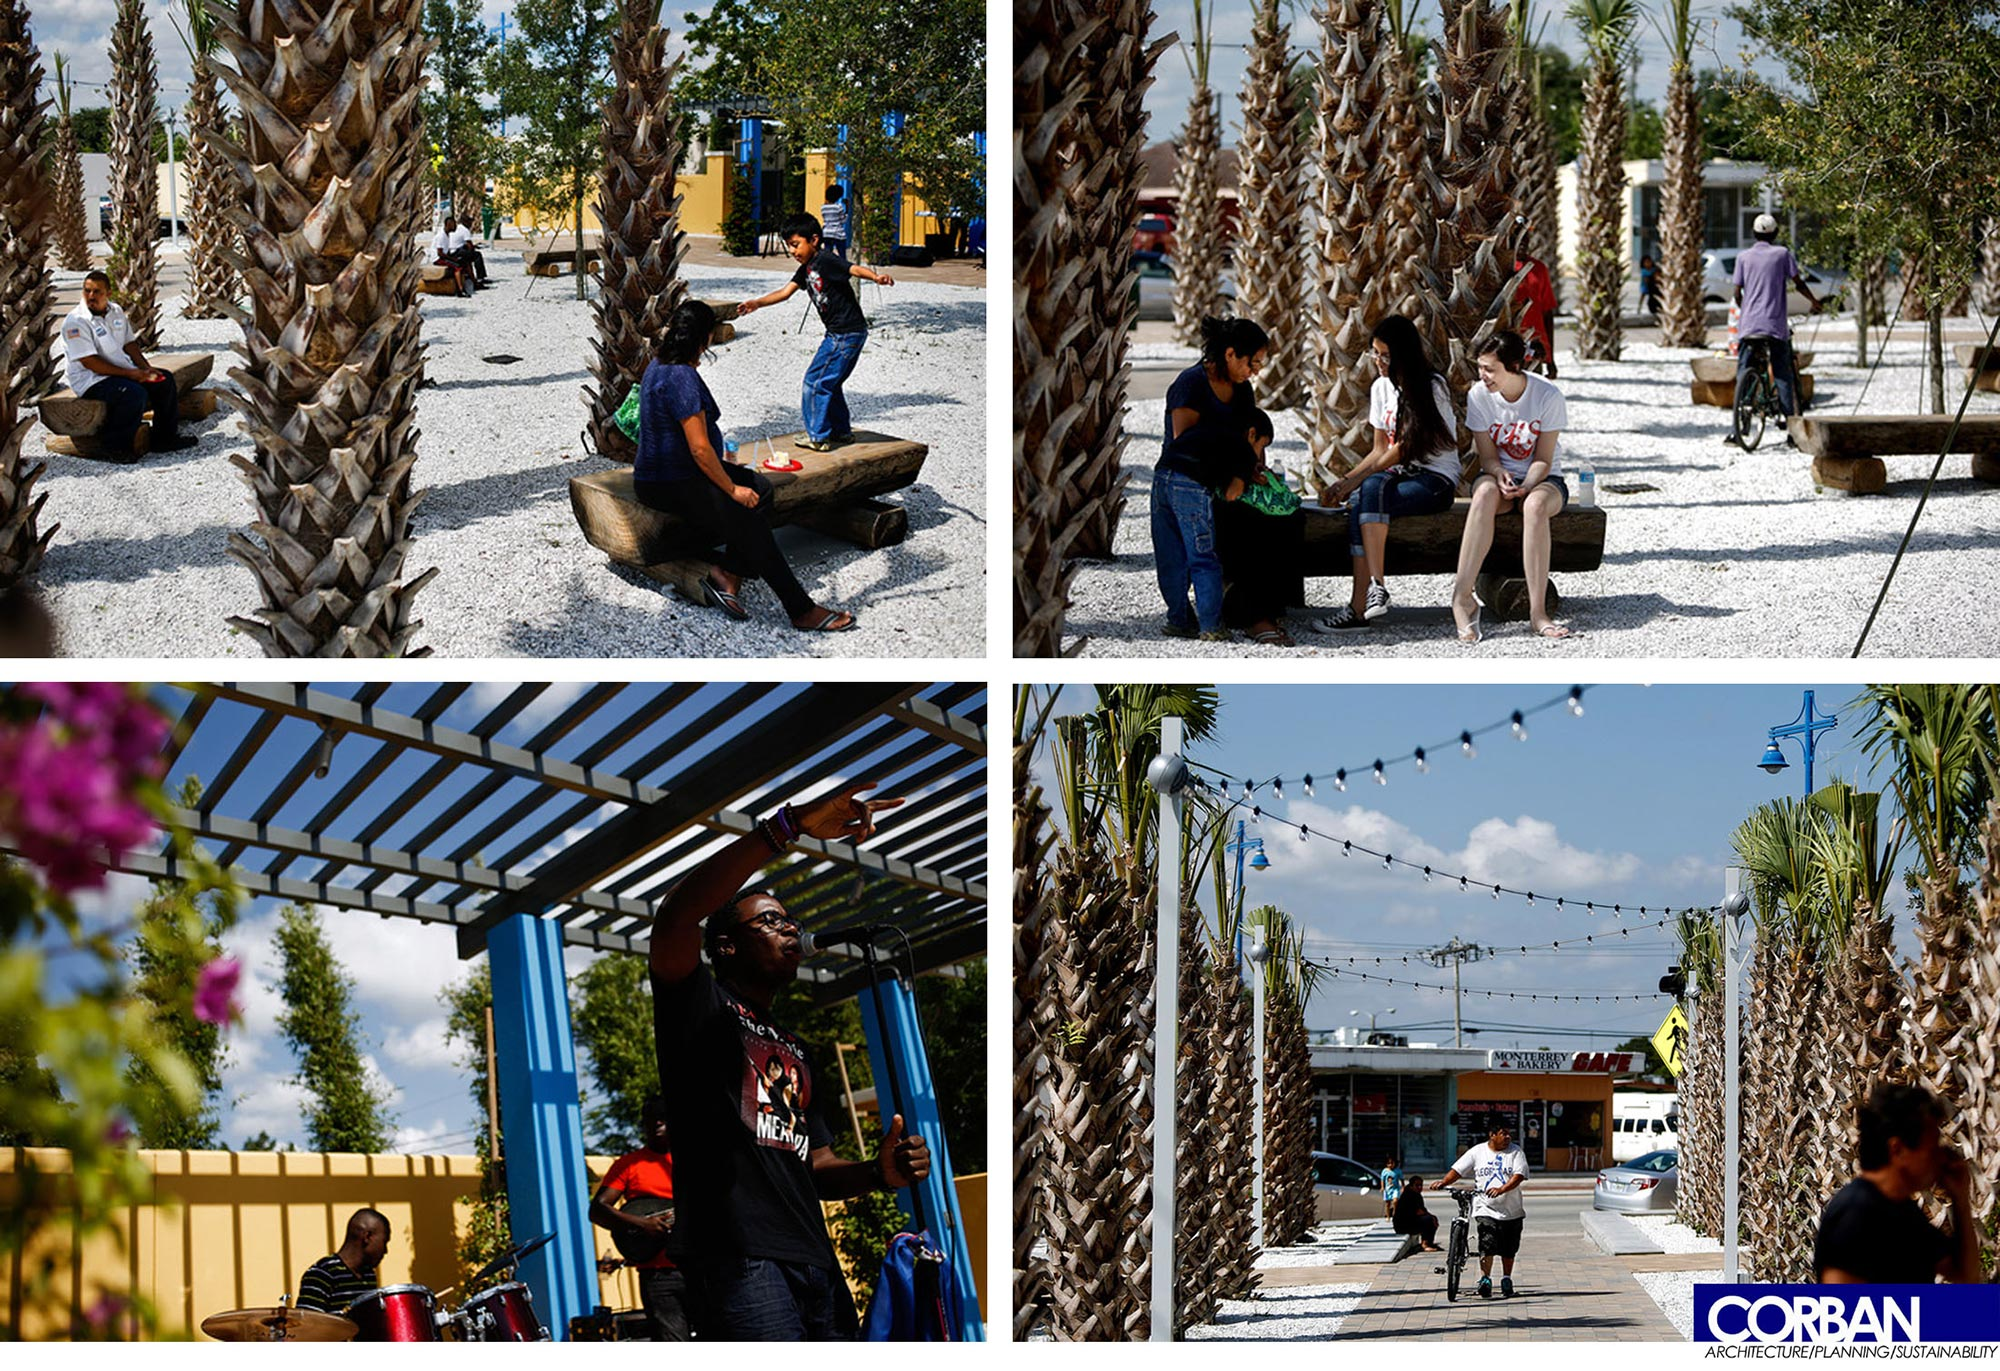 Locals using the different spaces in the park.